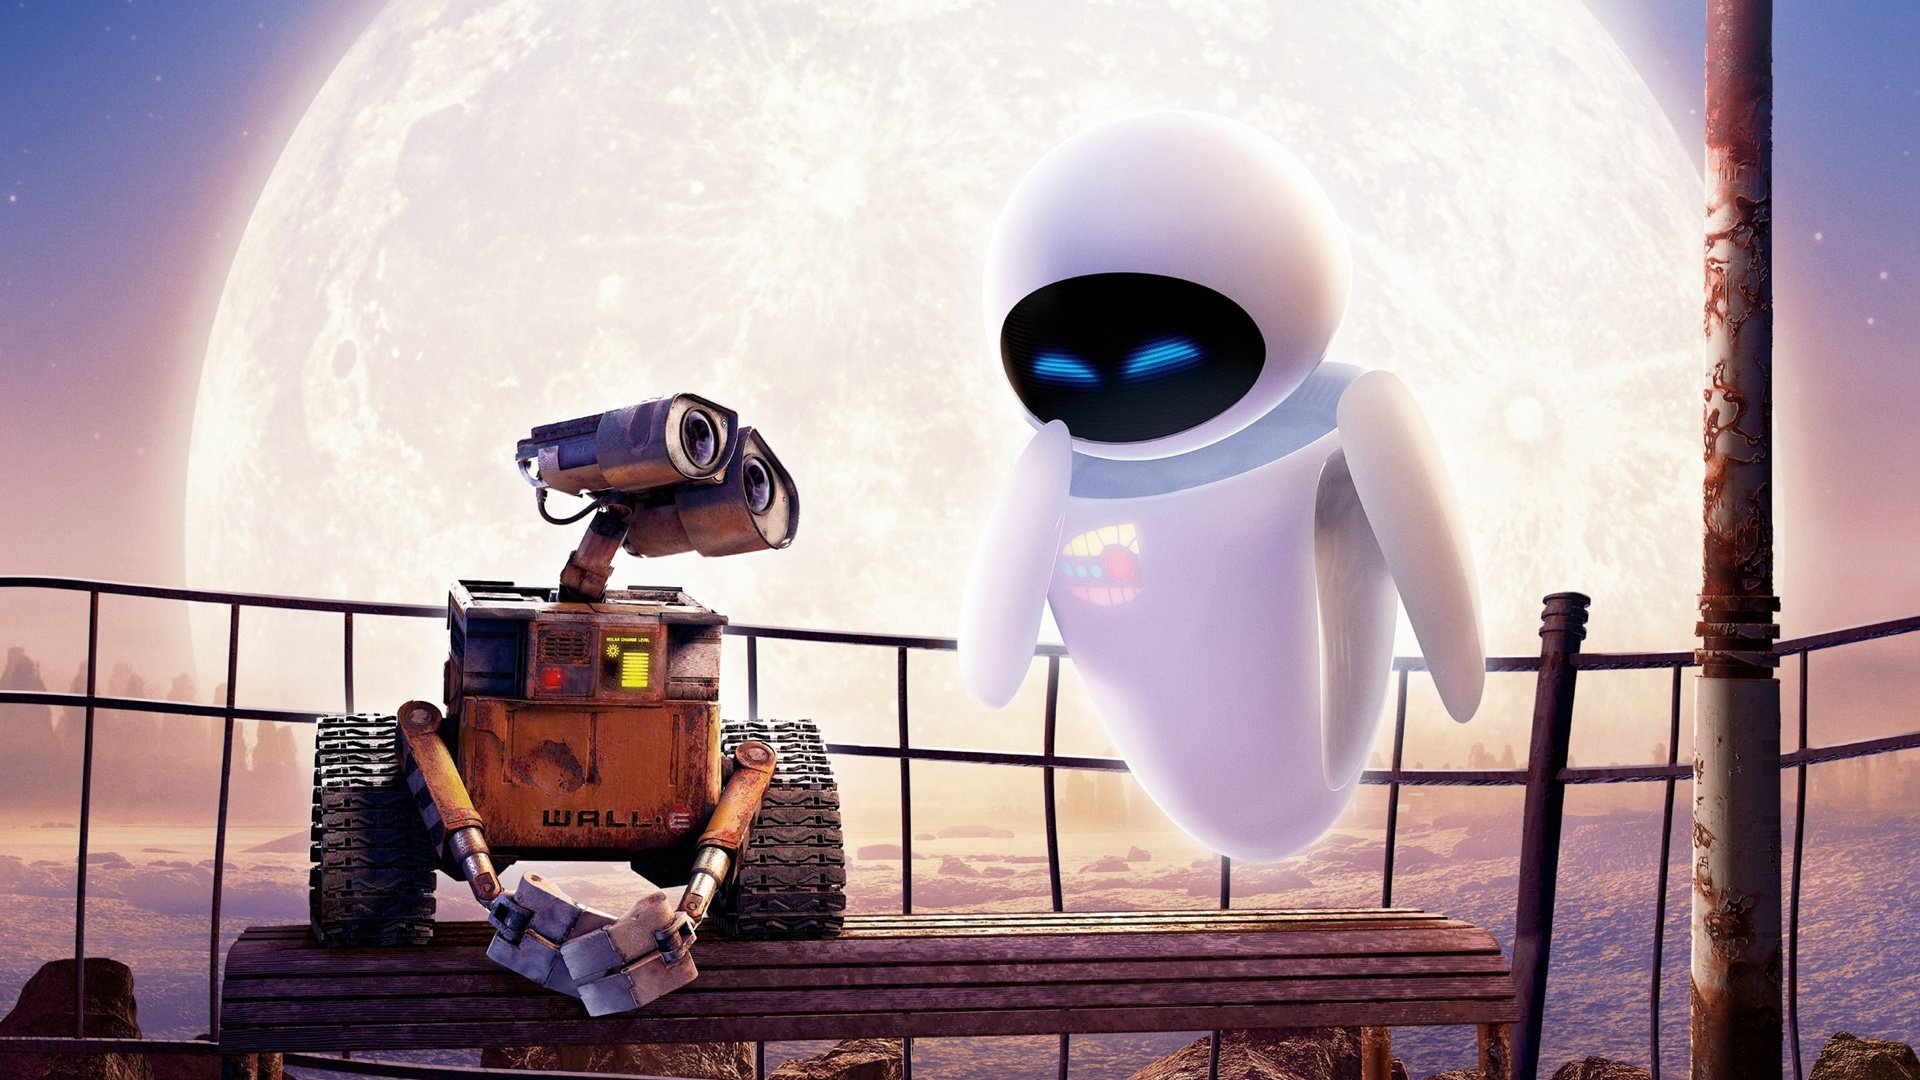 Download full hd Wall.E computer wallpaper ID:25902 for free